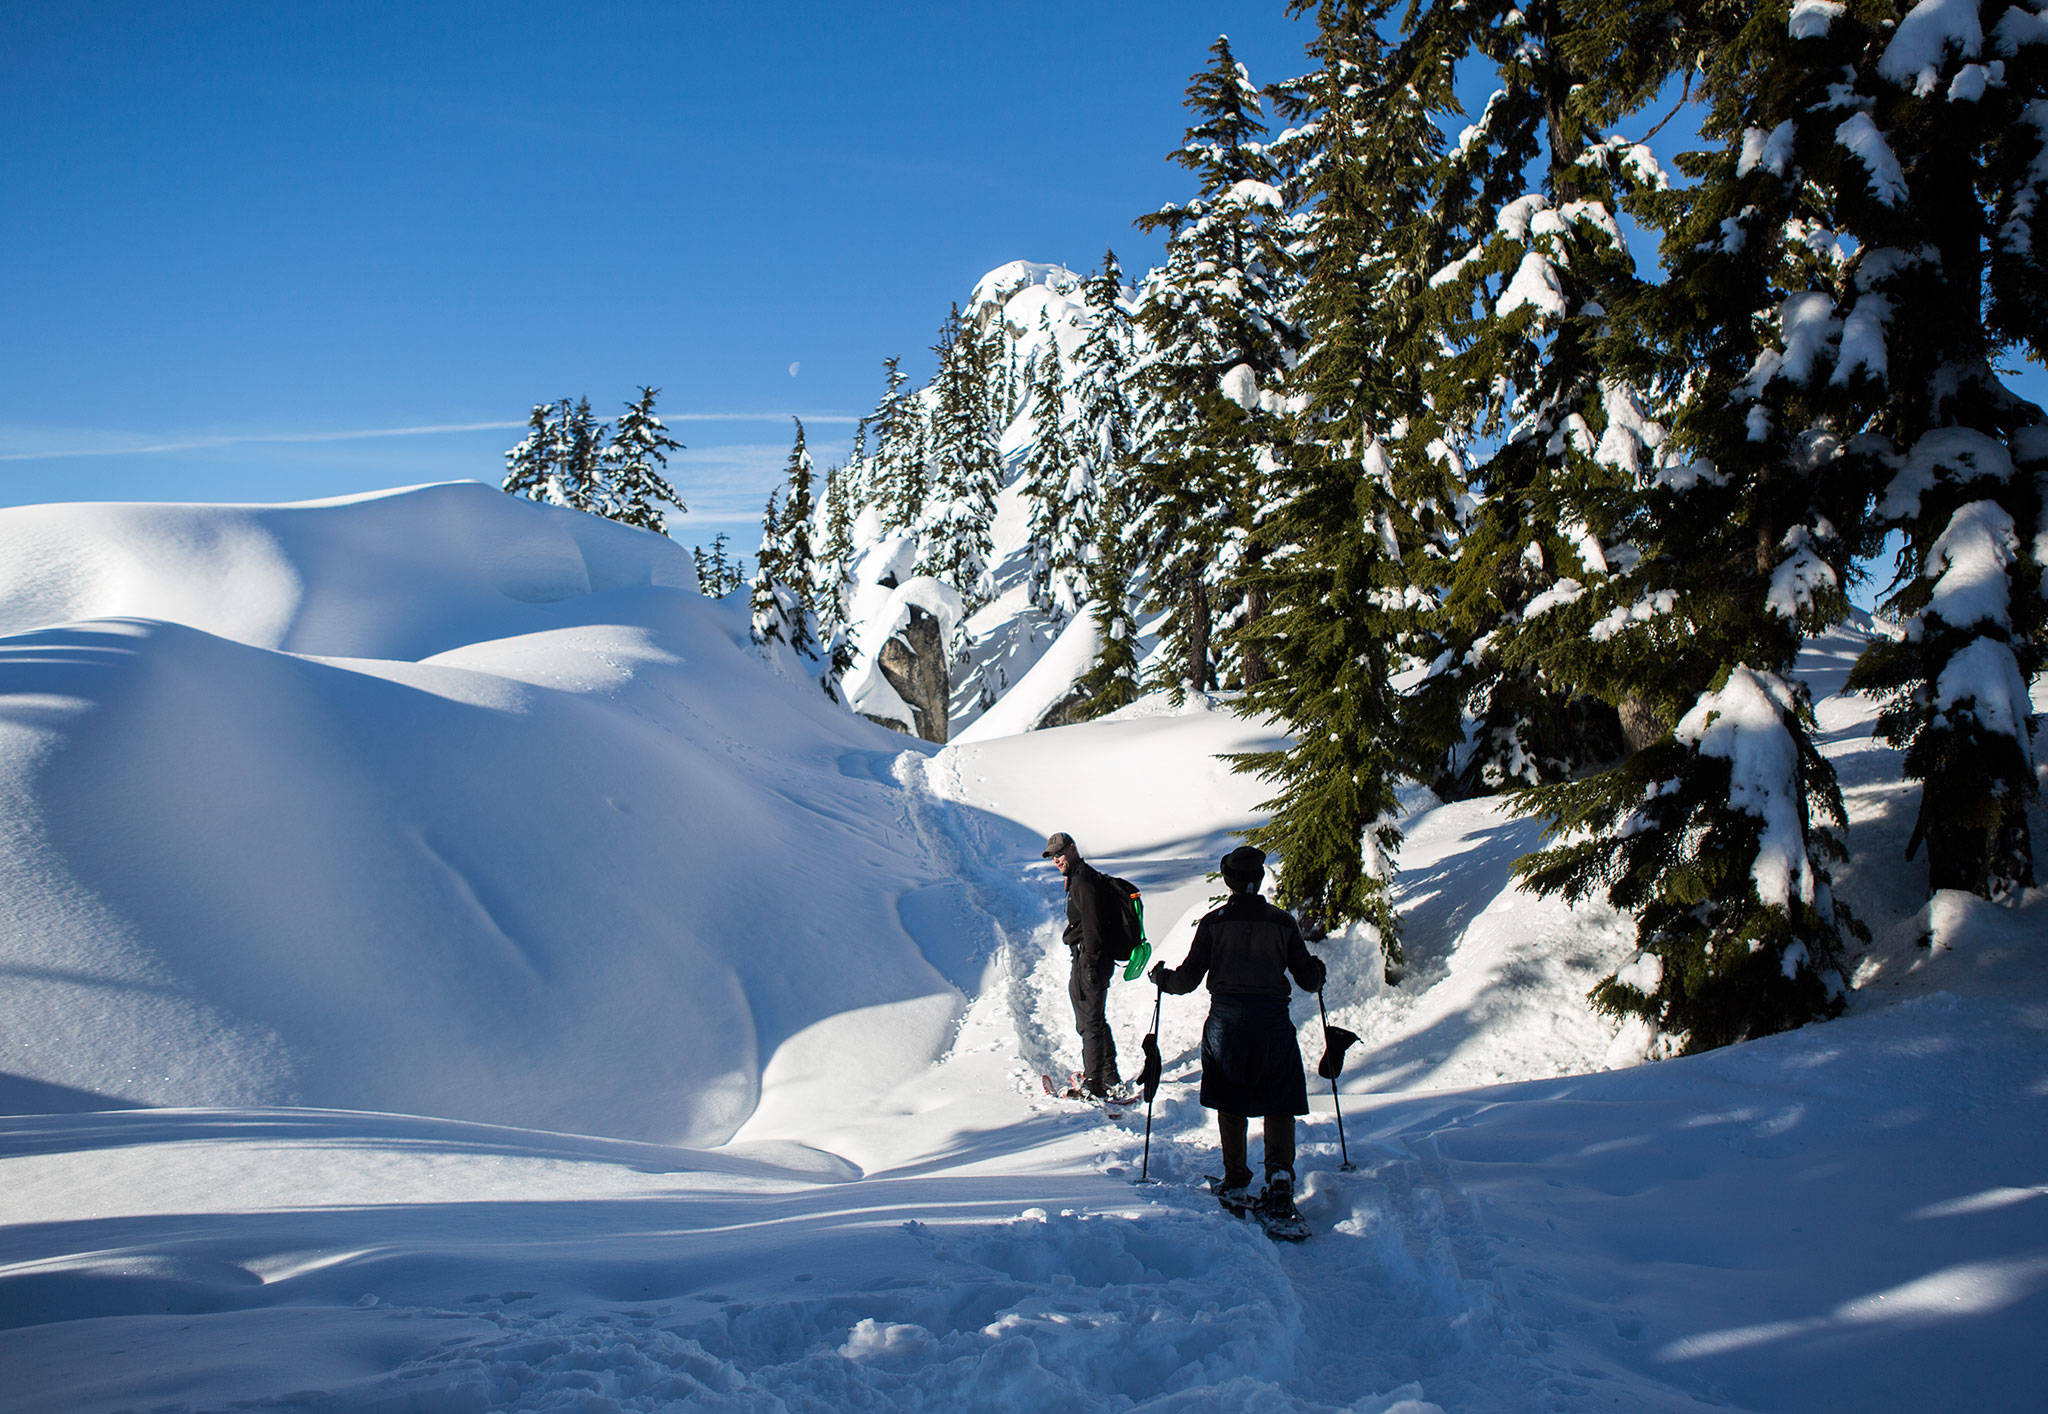 Sign up for a snowshoe tour with REI through the Mount Baker Lowlands — a mountainous winter wonderland that averages over 600 inches of snow annually. (Olivia Vanni / Herald file)